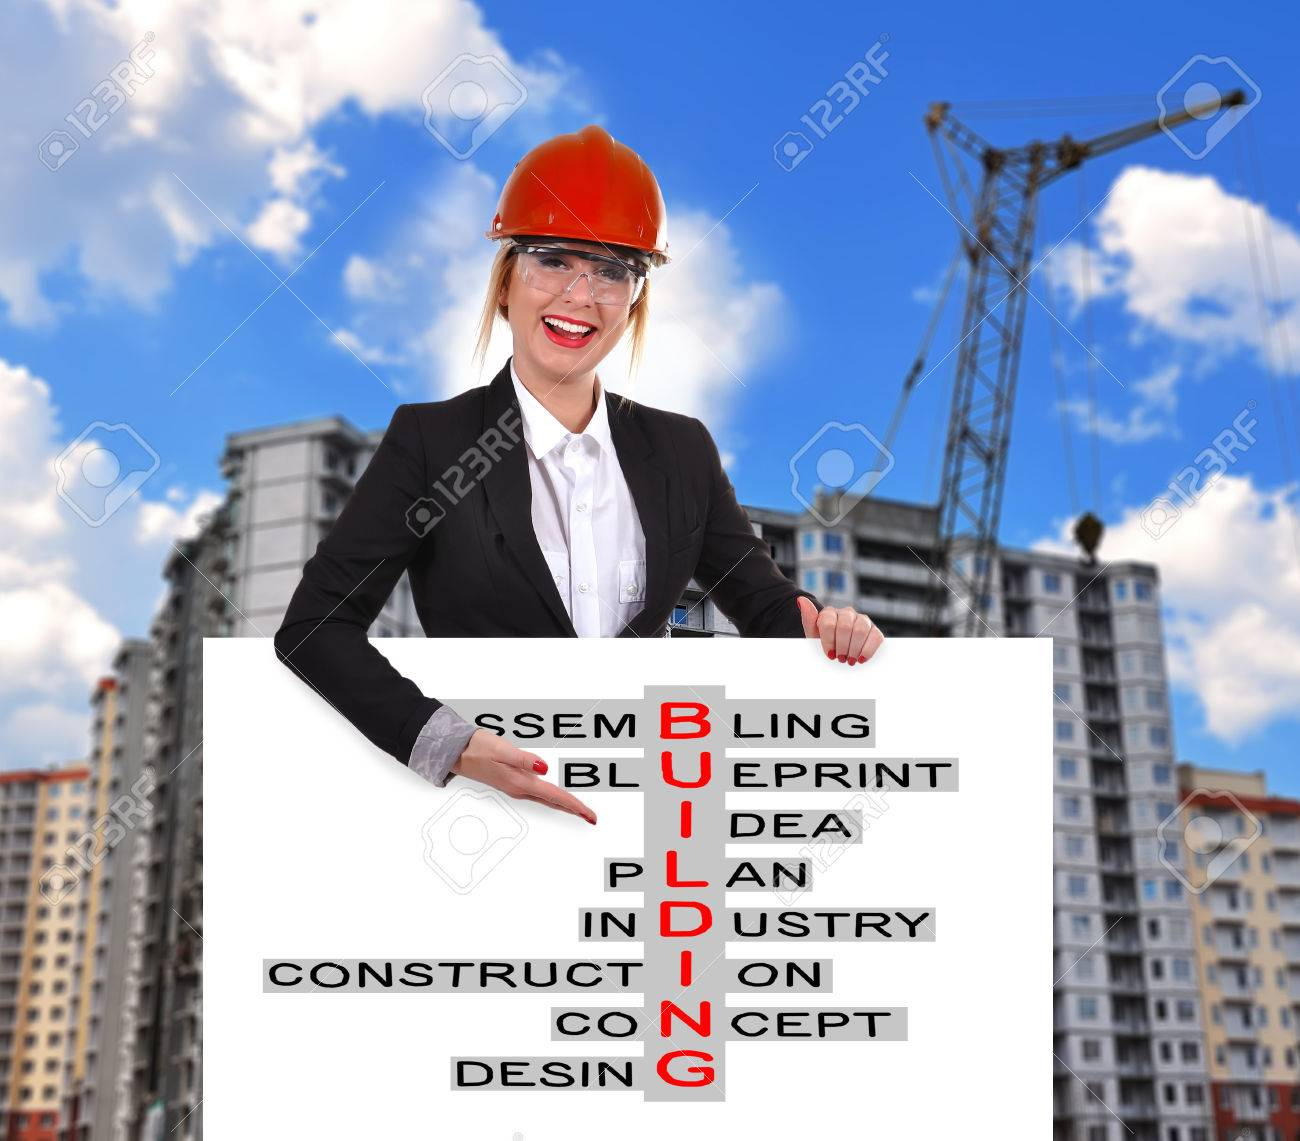 Placard Crossword Engineer Woman Holding Placard With Crossword Construction